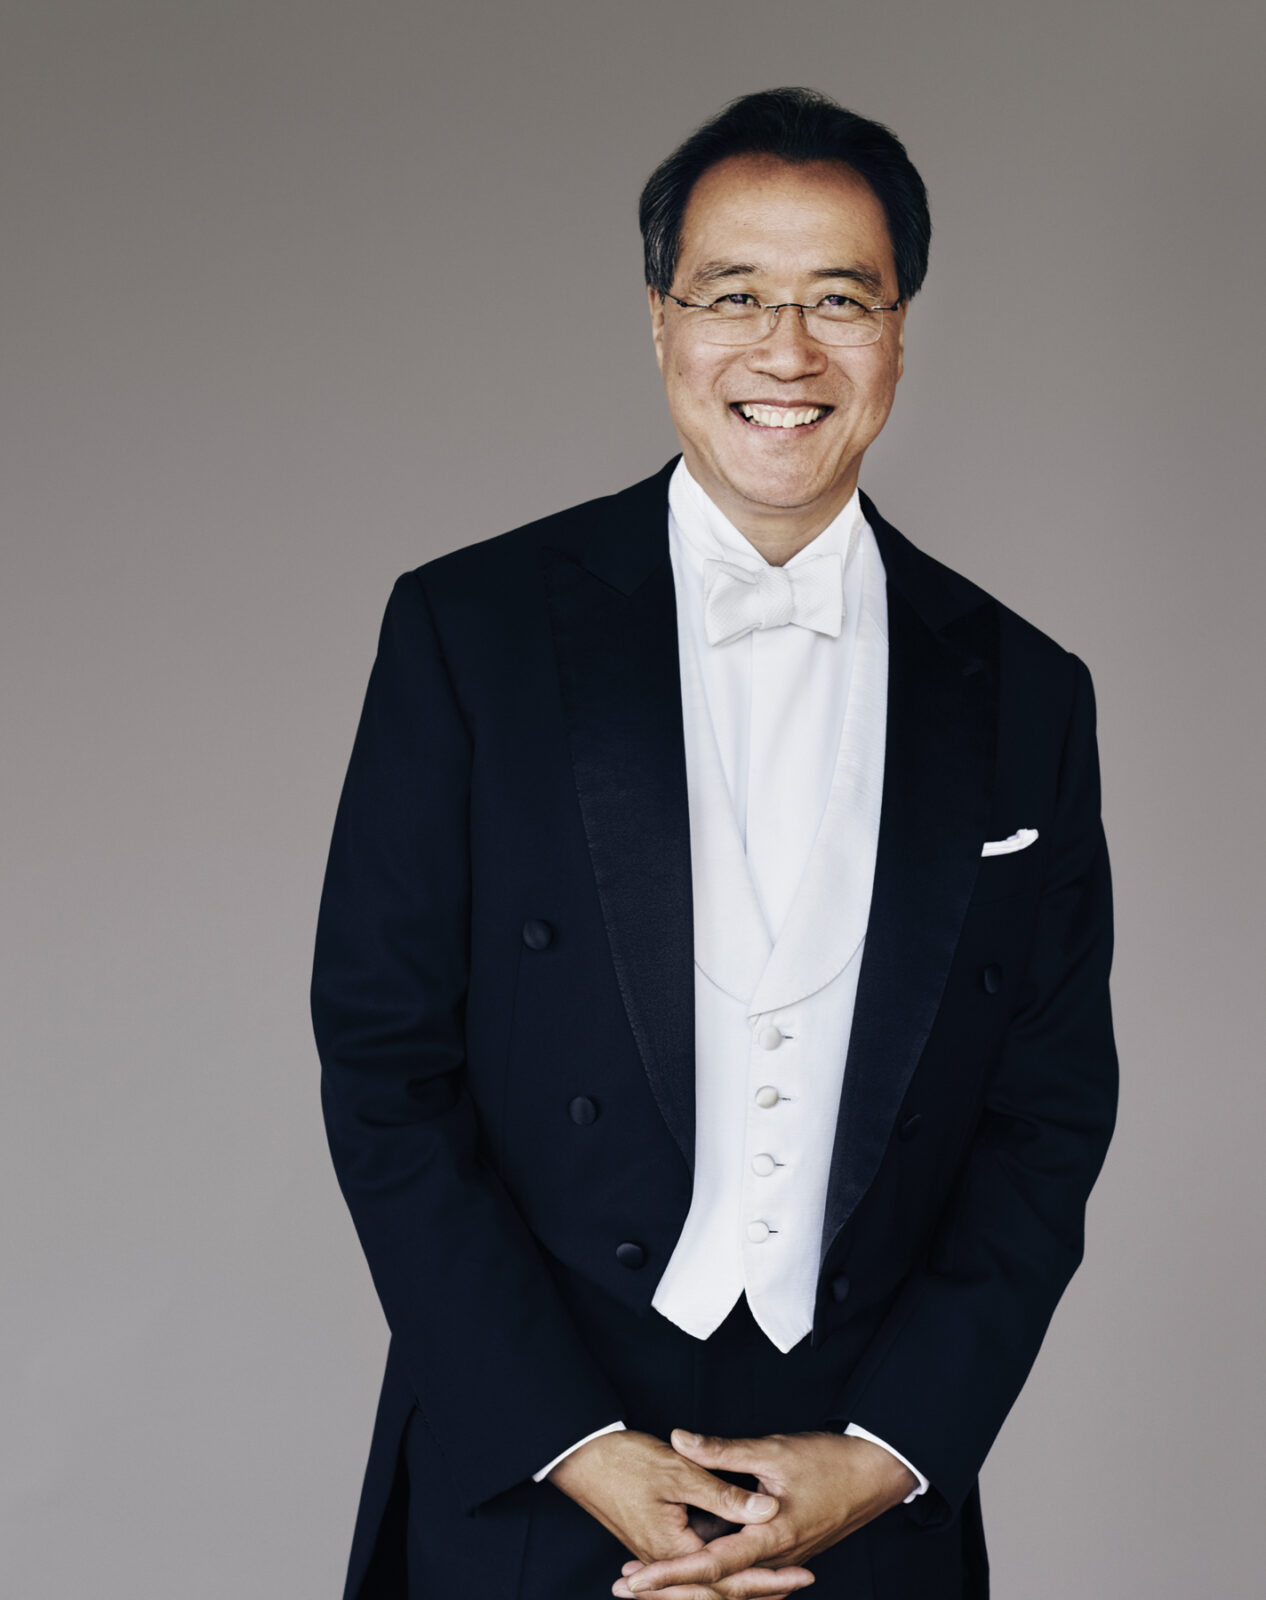 Cellist Yo-Yo Ma, 32nd presenter in the Remmers Special Artist/Lecturer Series